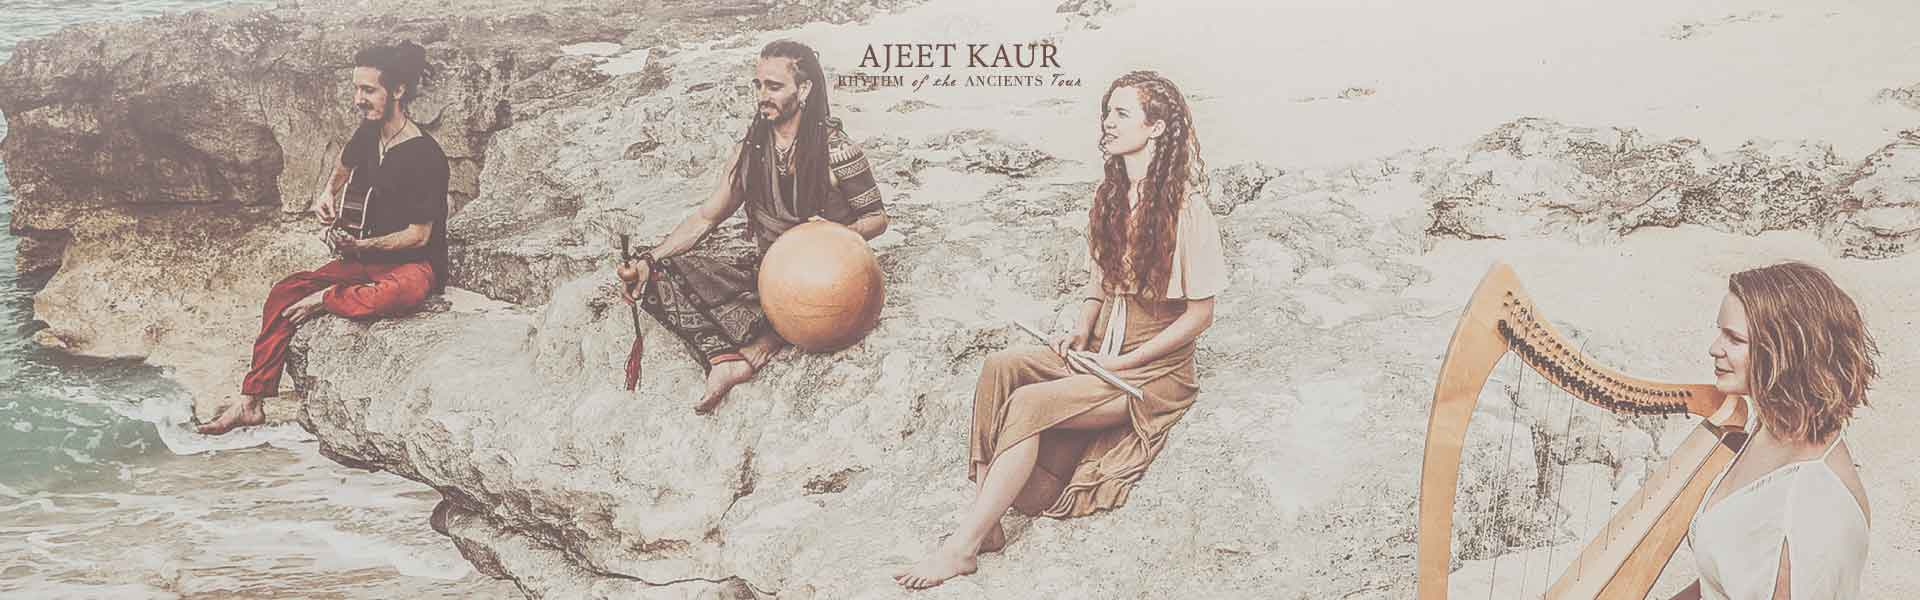 Ajeet Kaur Rhythm Of The Ancients 3 October Theater Amsterdam HeartFire.nl